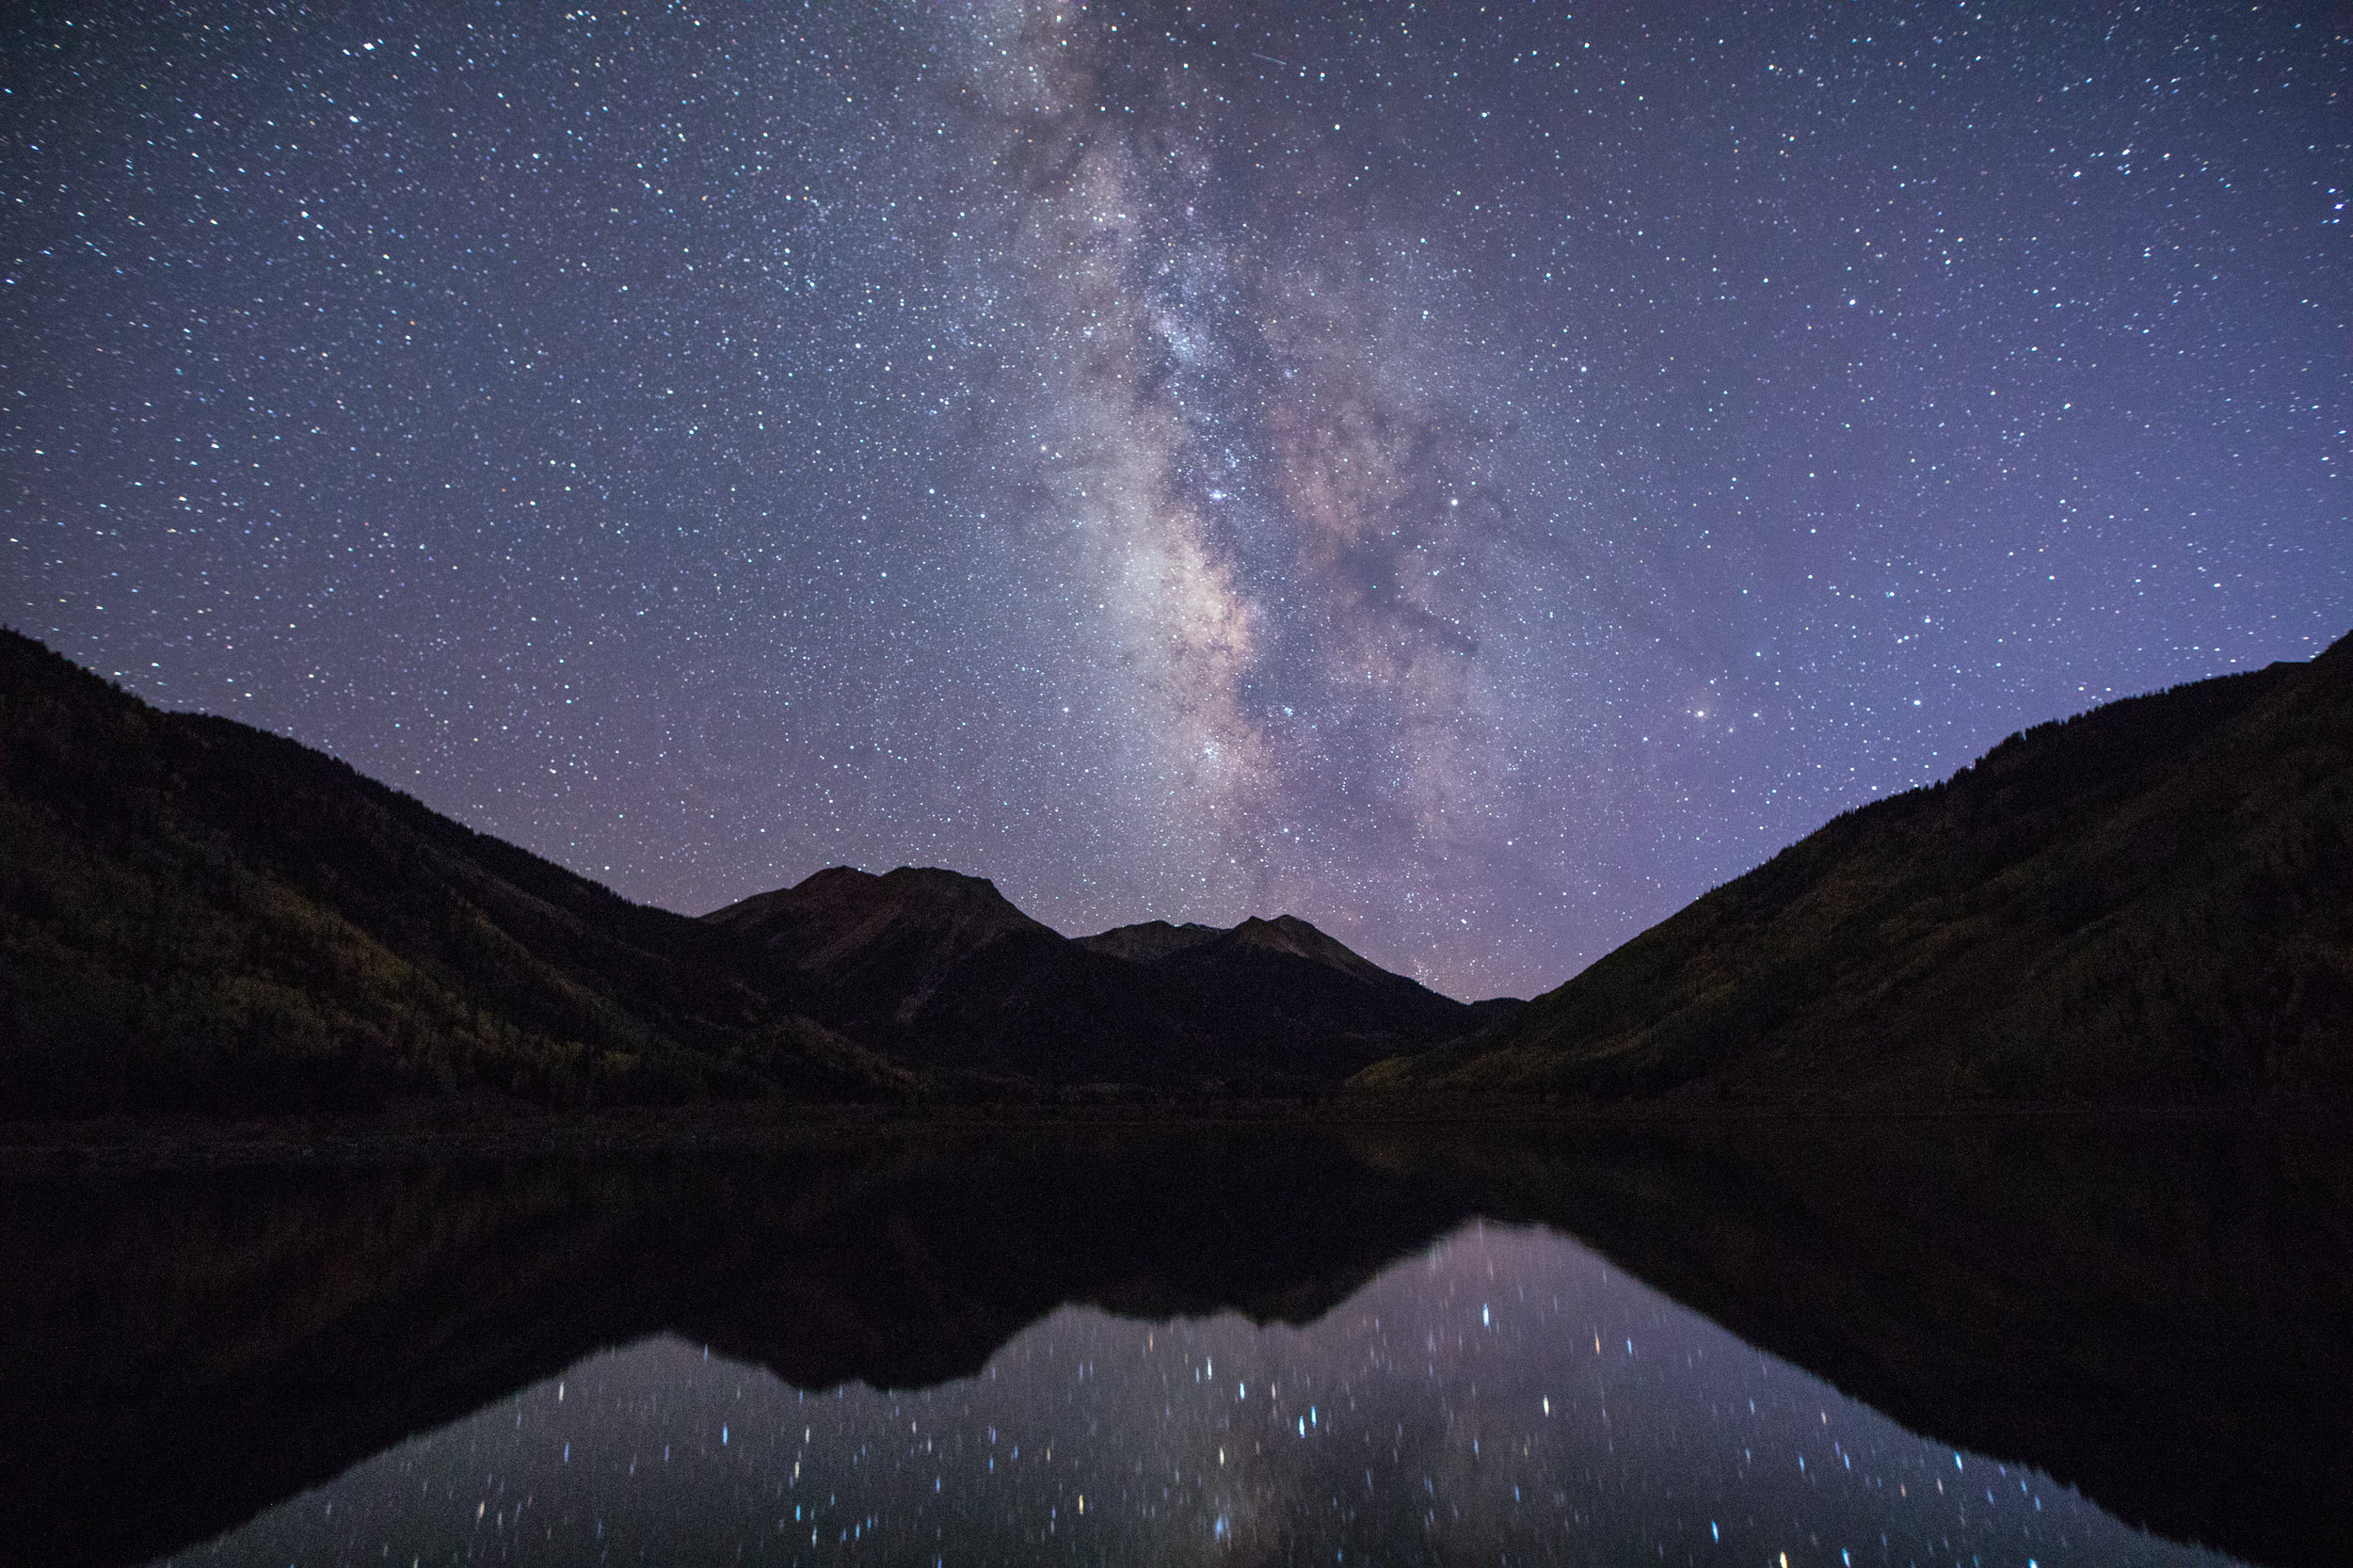 Milky Way Reflection over Red Mountain, Image # 1669